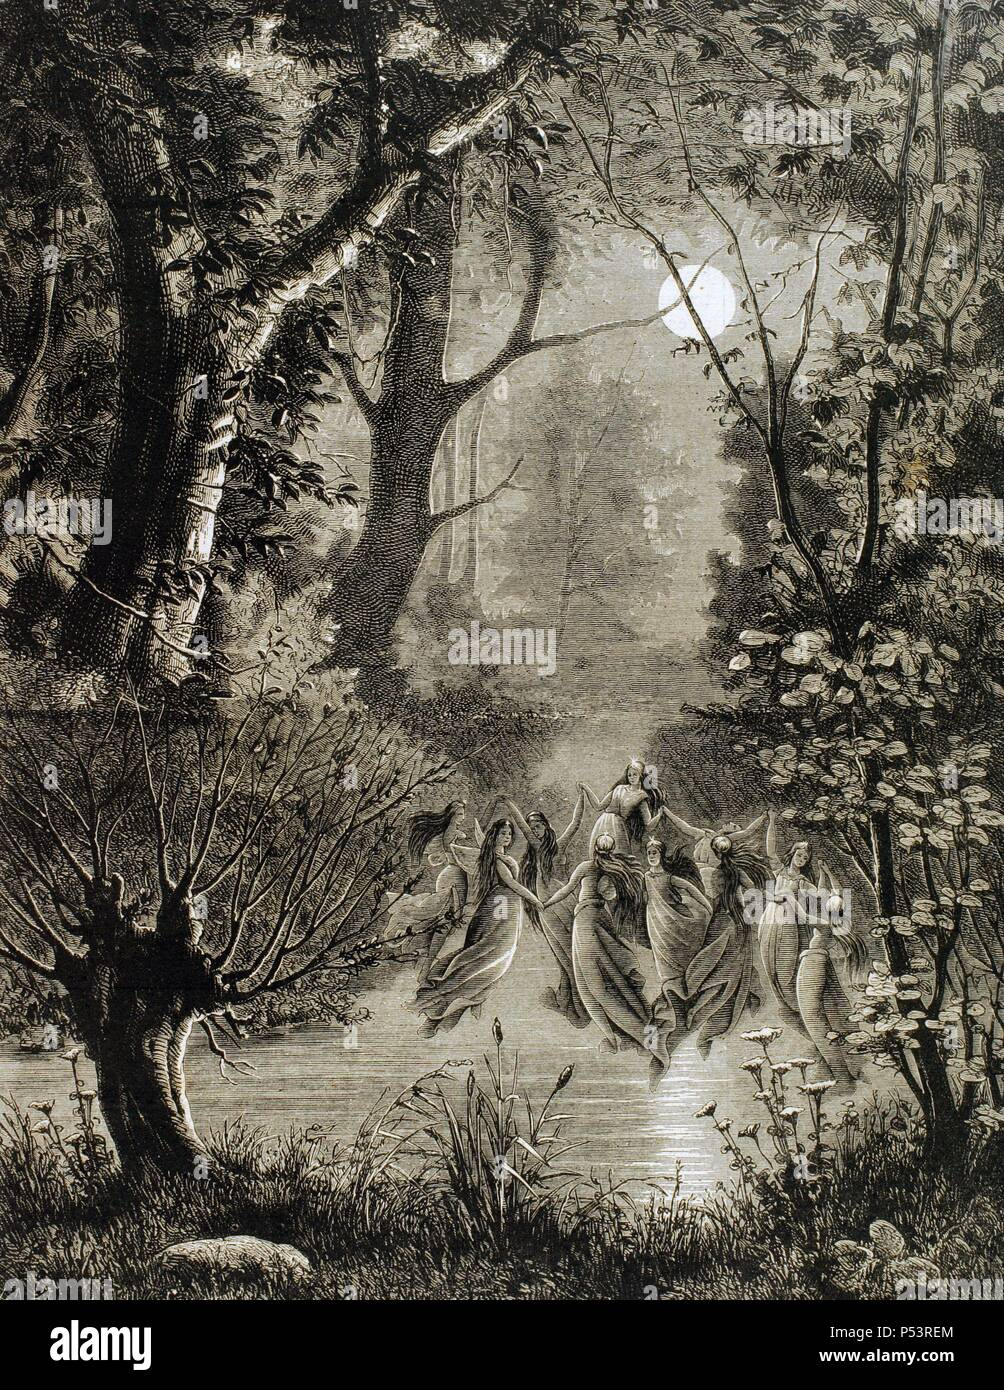 Spirits of nature. Undines in a circle over the water of a river. Engraving of The Illustration, 1885. - Stock Image